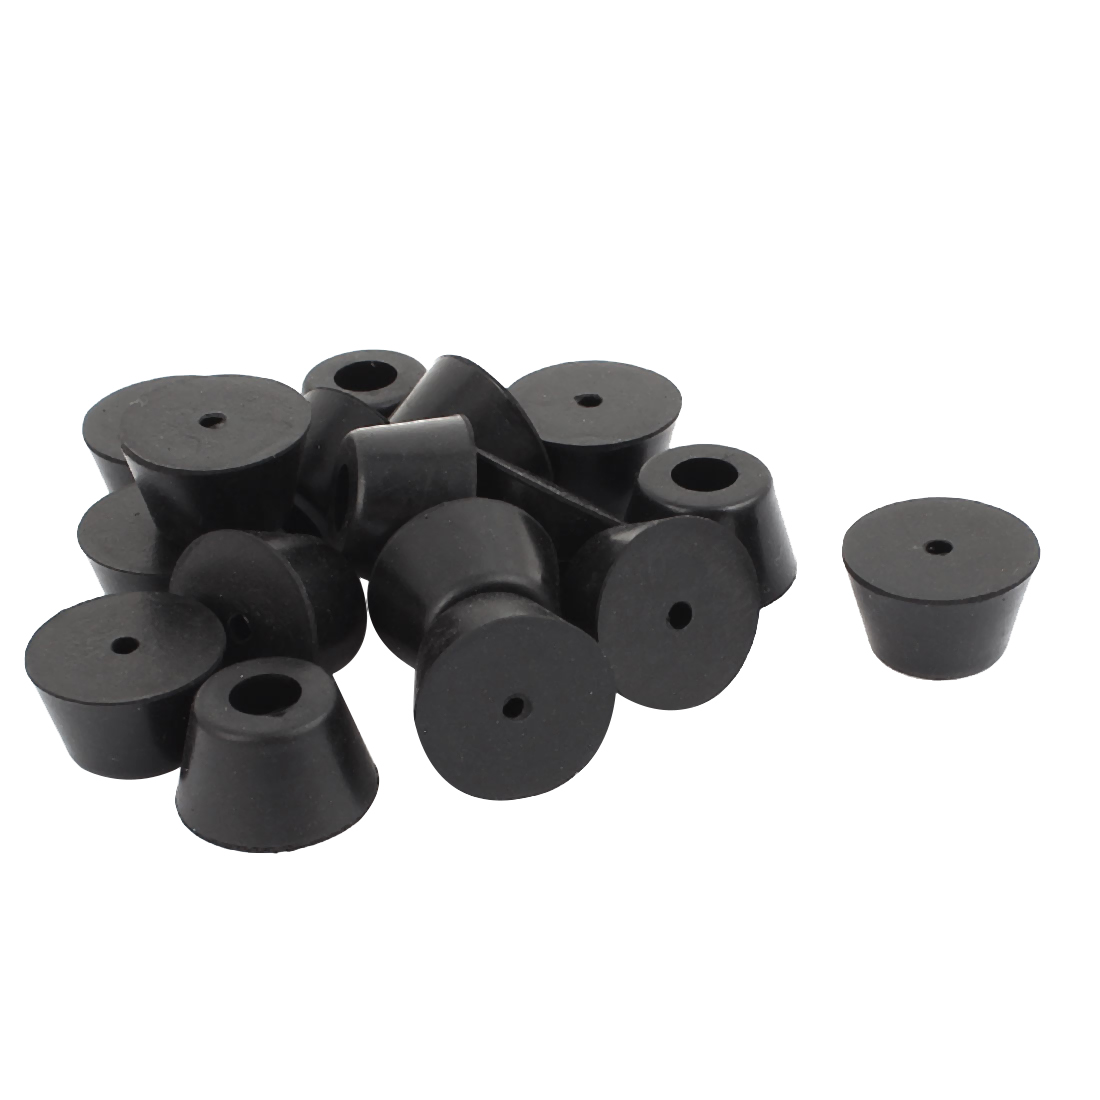 feet for chairs browning camp chair 17pcs 10mm dia hole rubber cover furniture table end leg tips caps walmart com